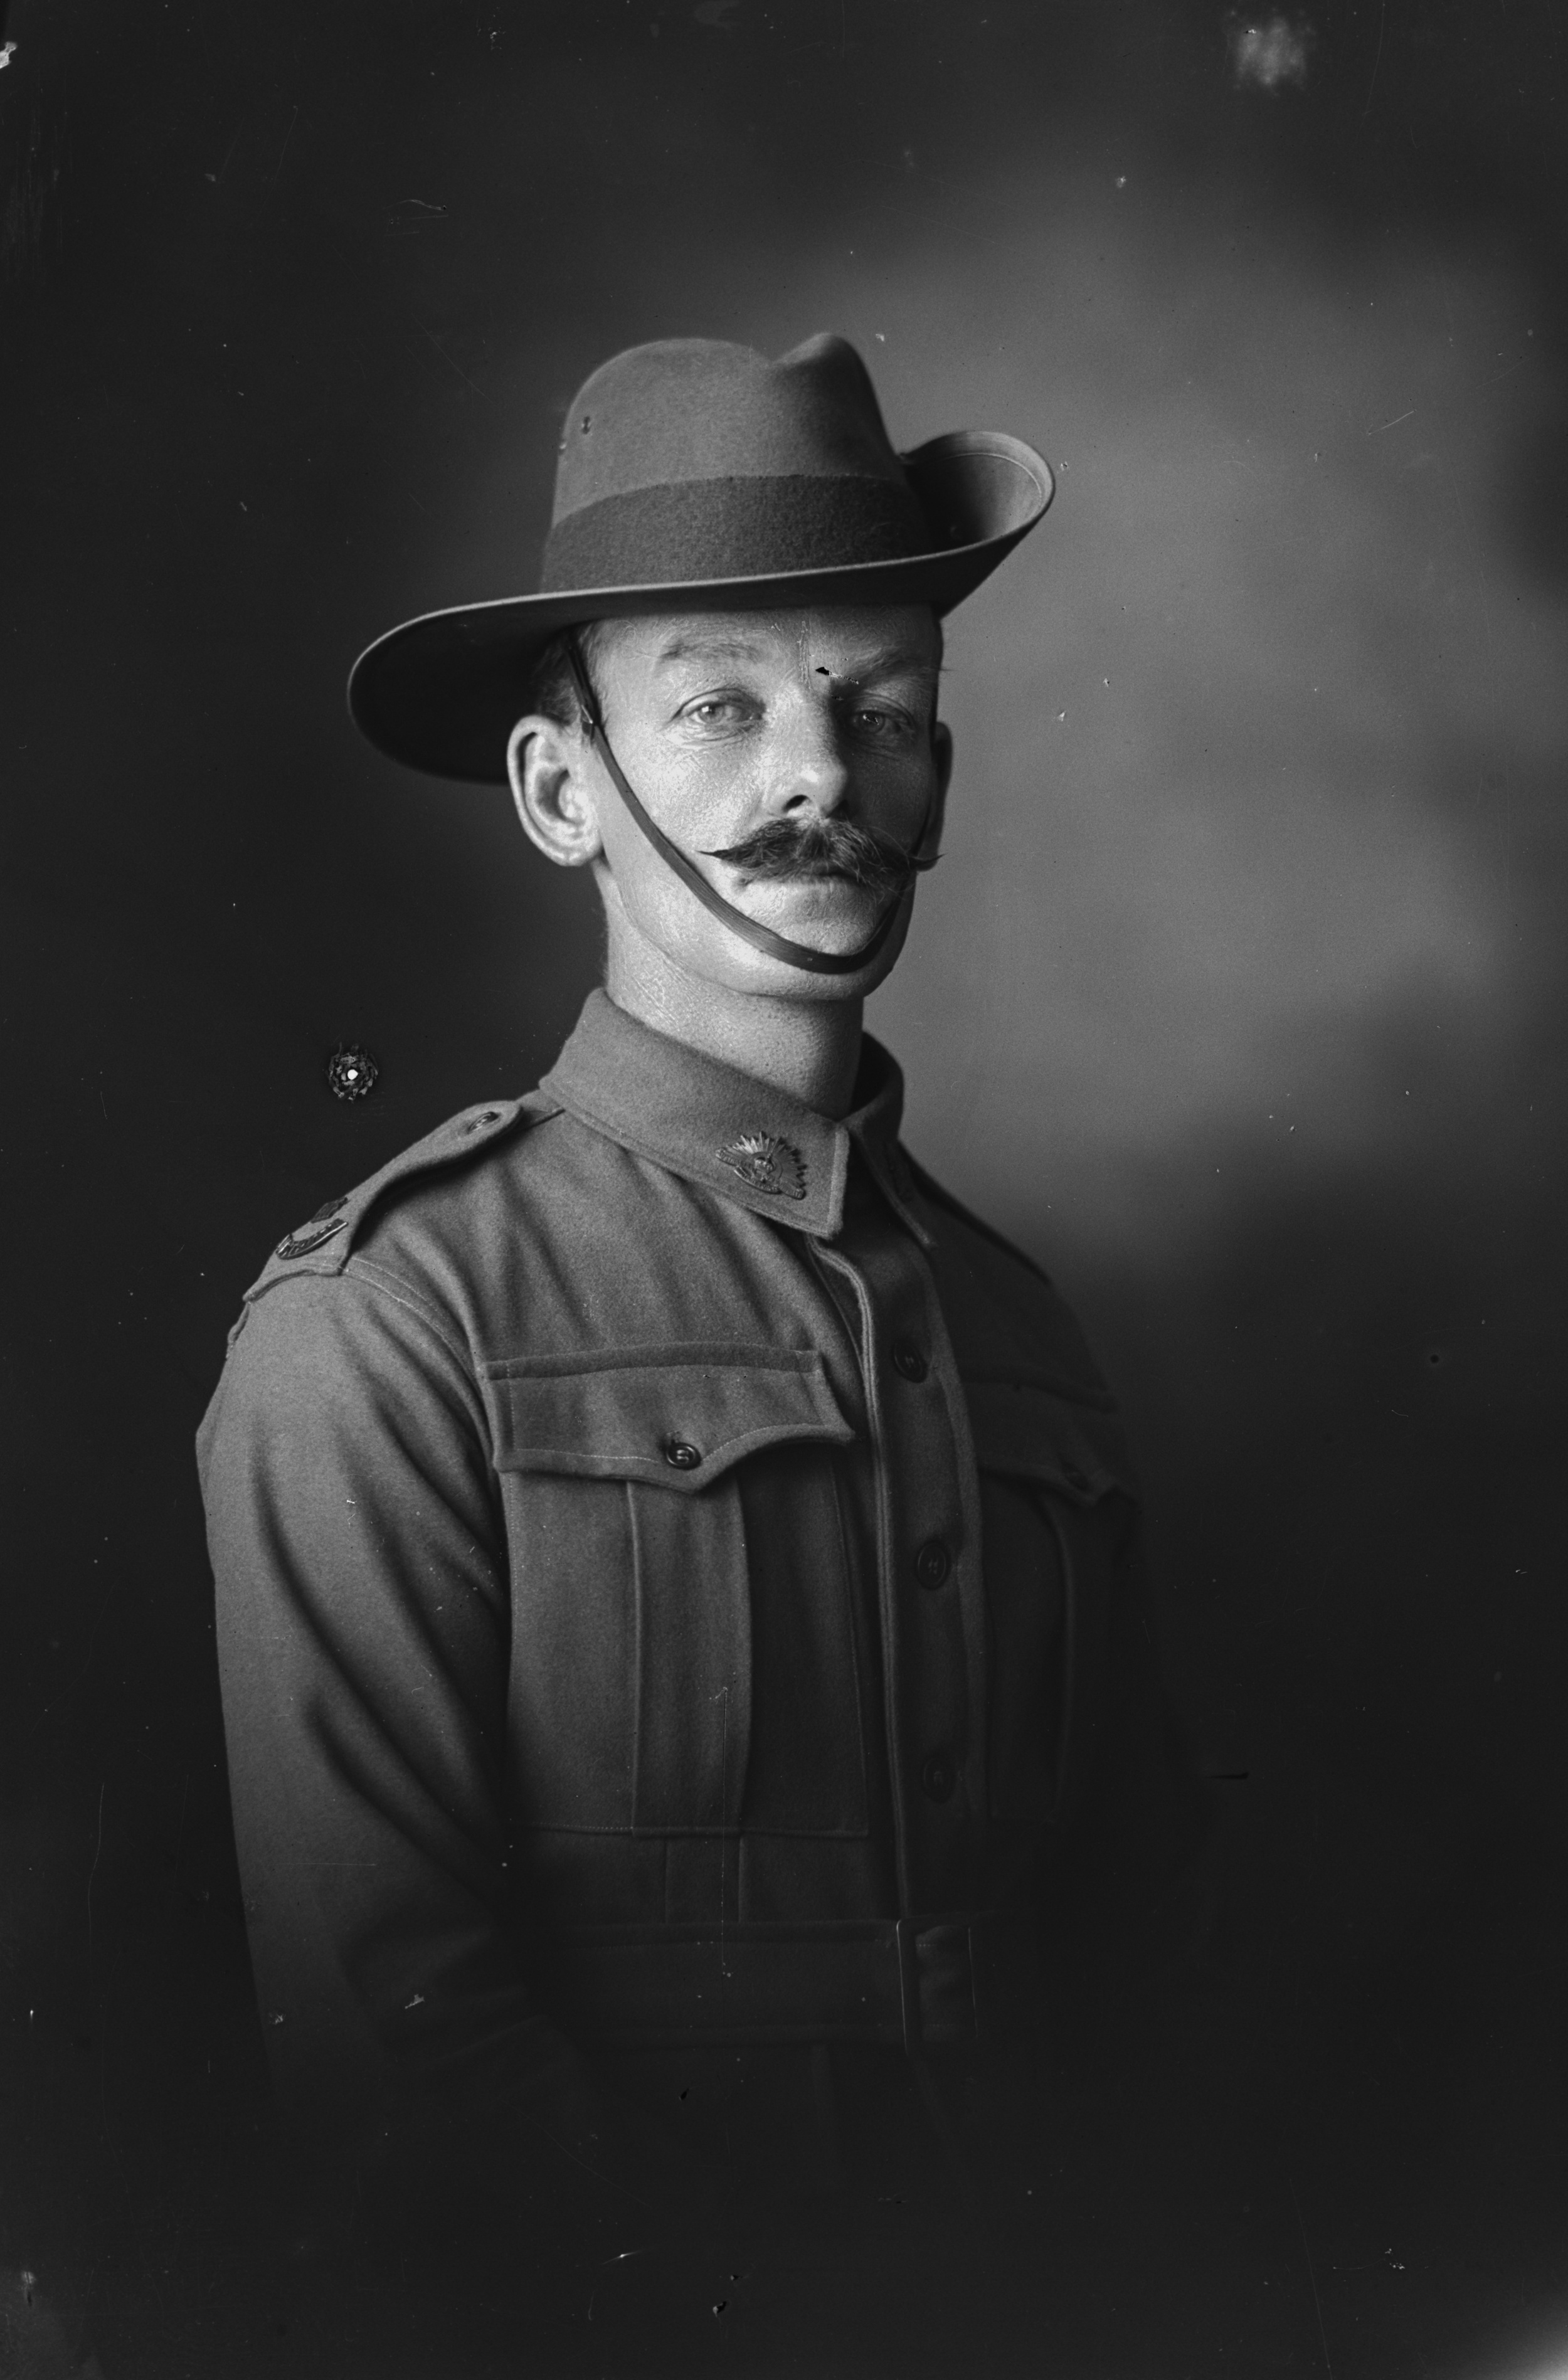 Photographed at the Dease Studio, 117 Barrack Street Perth WA Image courtesy of the State Library of Western Australia: 108296PD